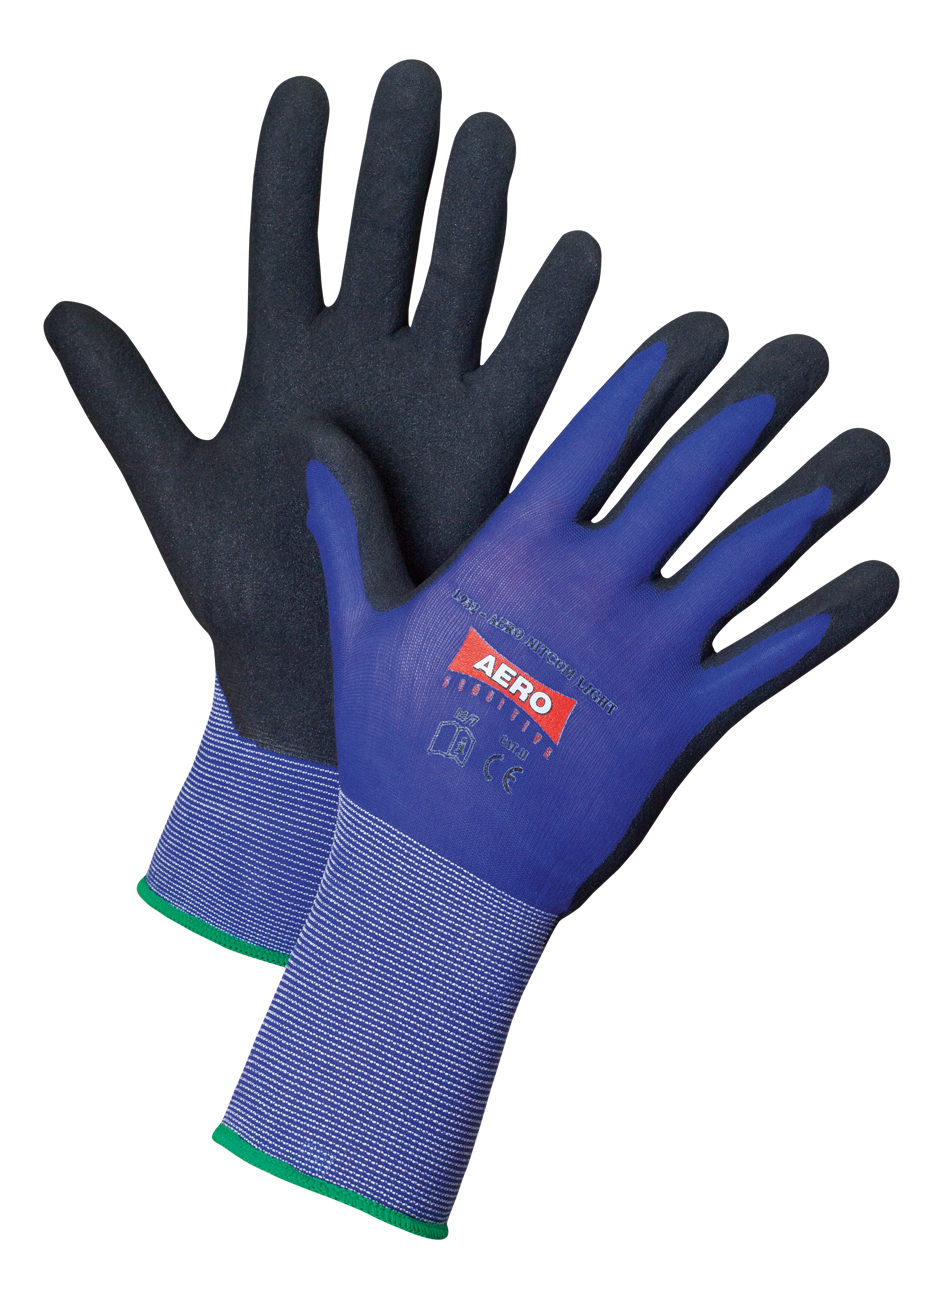 AERO Gloves NitroCom Optimal 1932